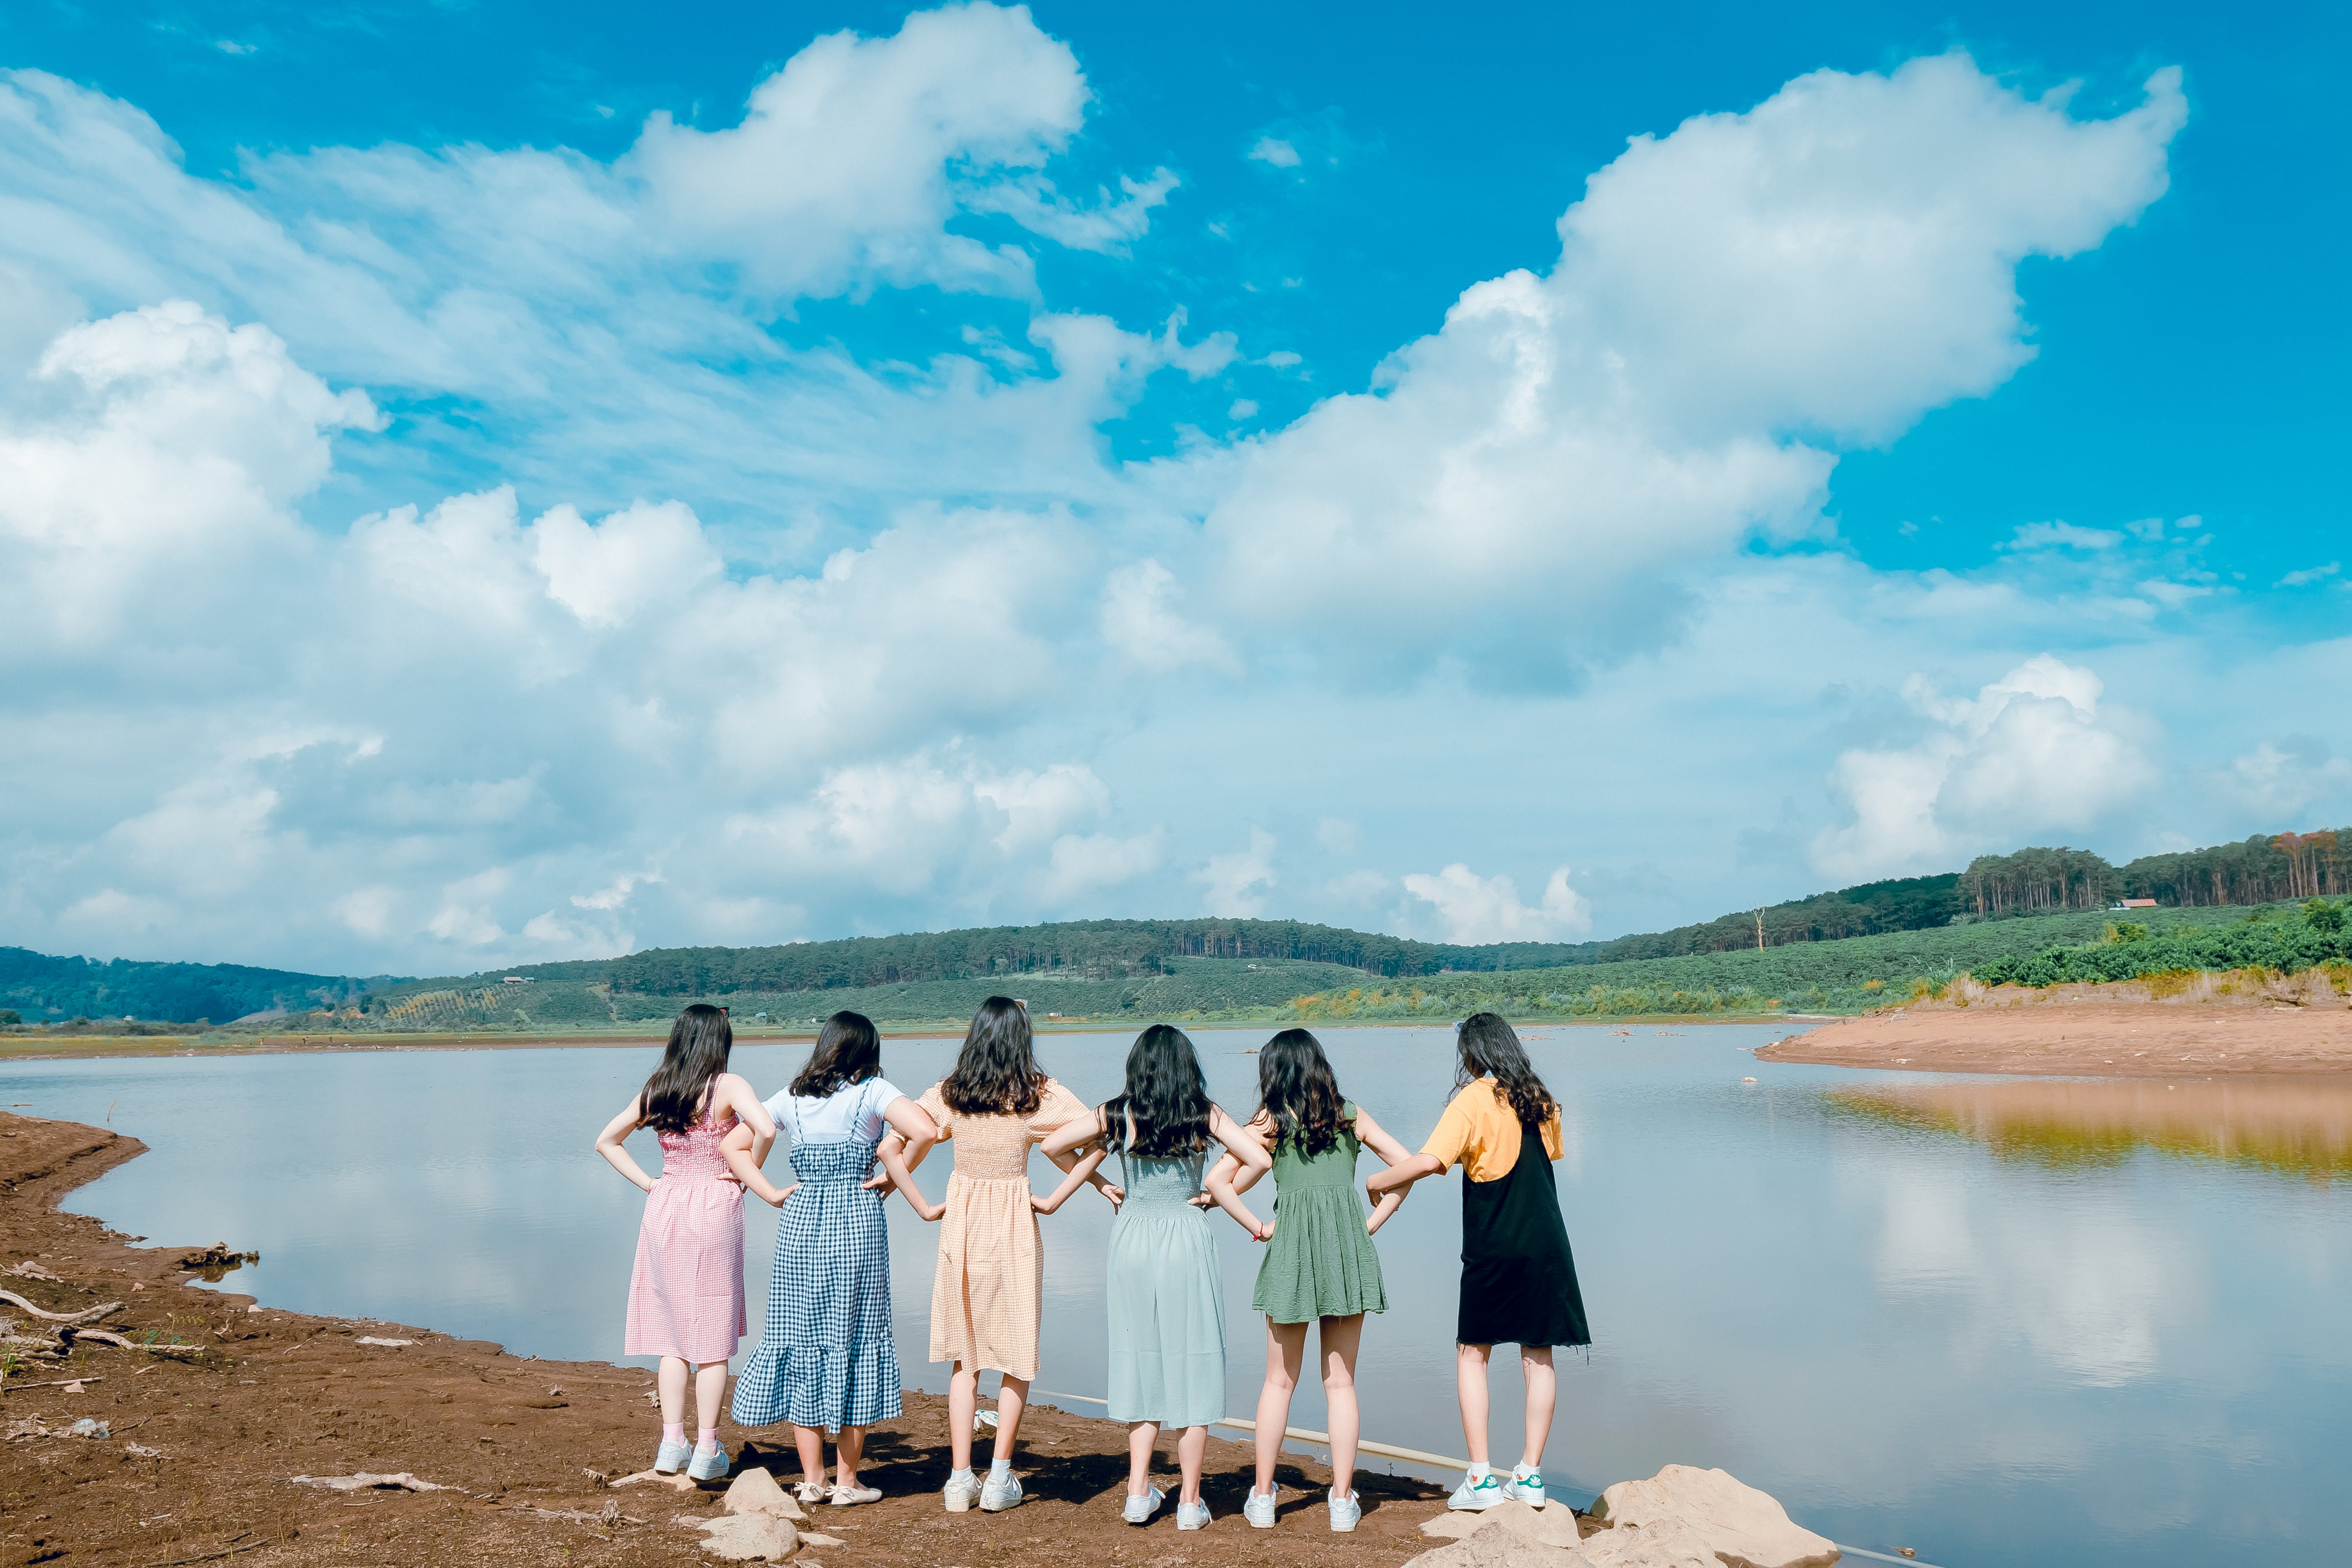 Group of Girls Standing Beside River